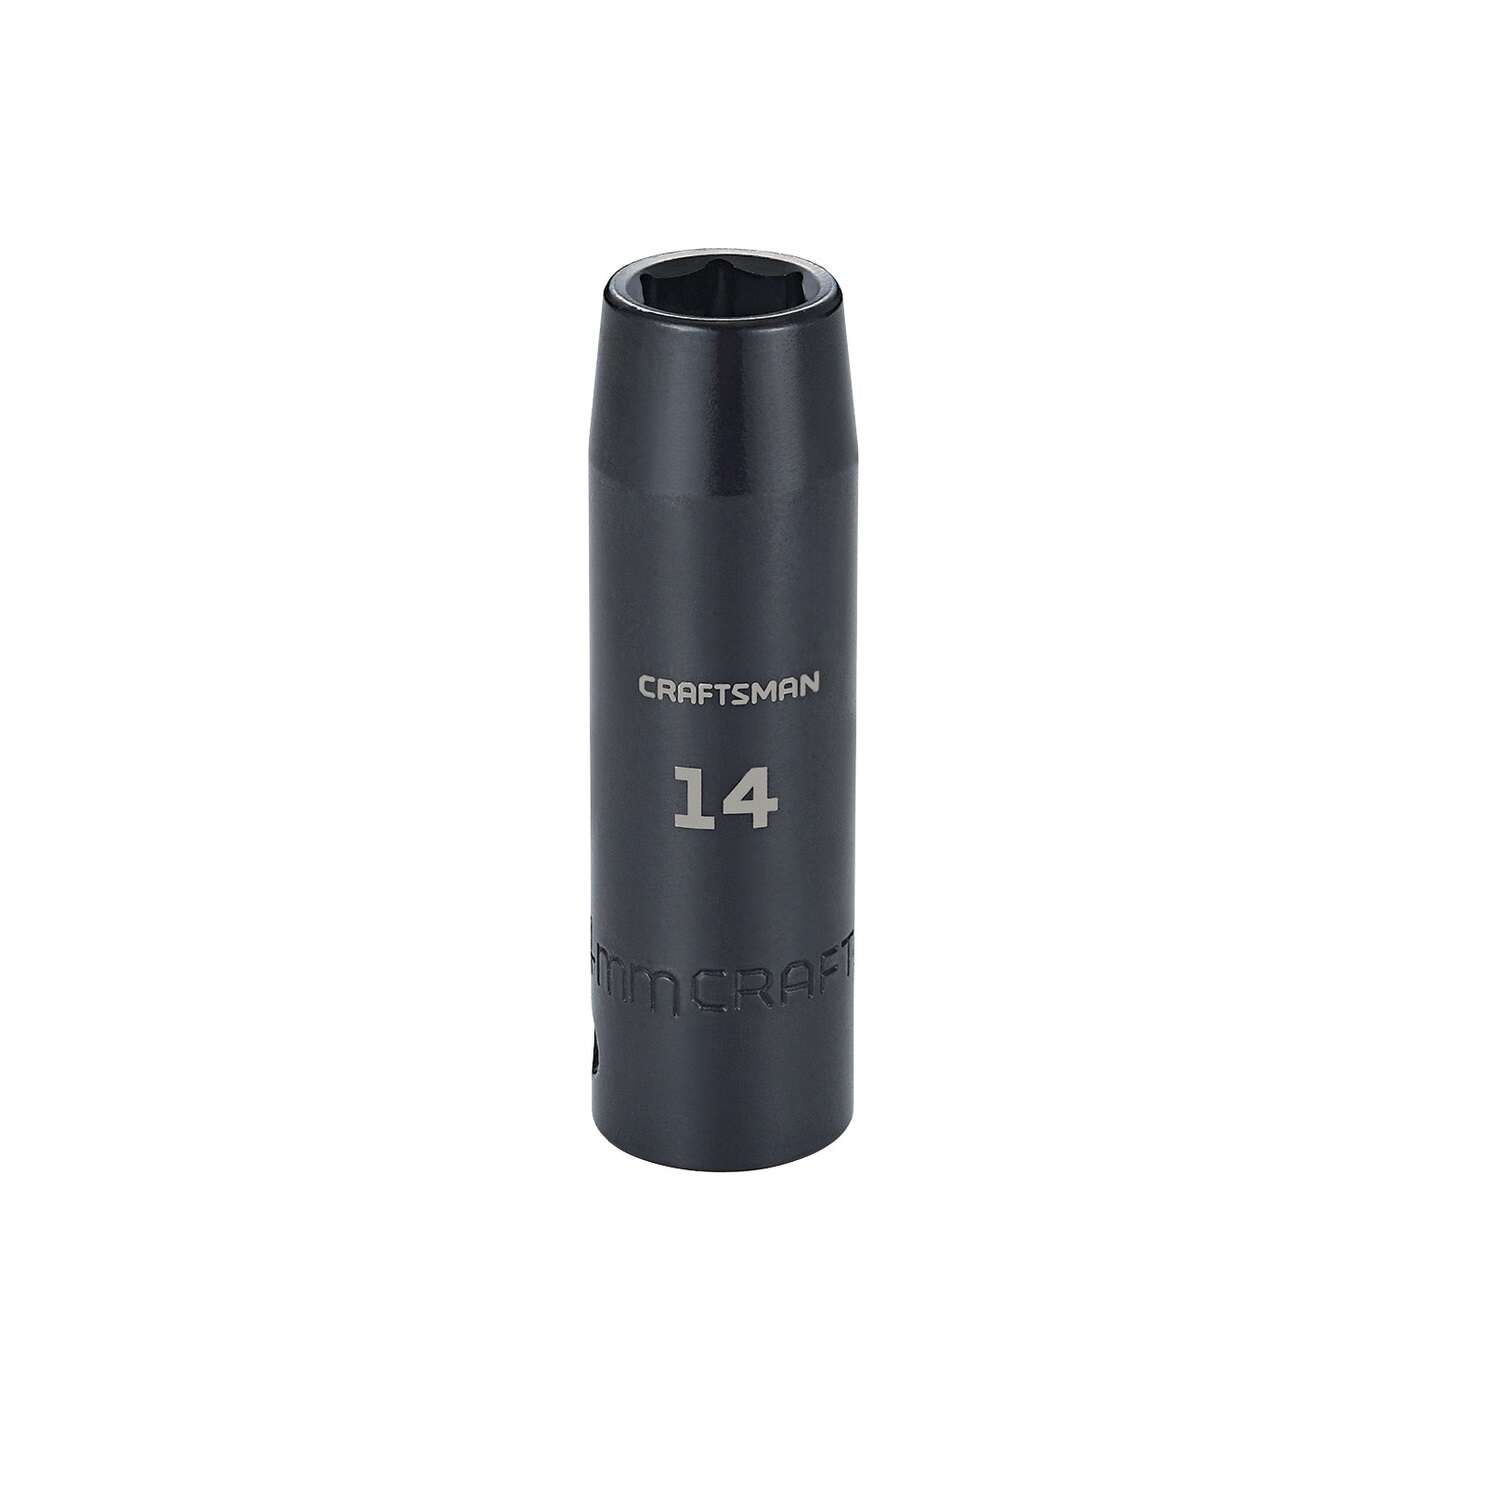 Craftsman 14 mm x 1/2 in. drive Metric 6 Point Deep Deep Impact Socket 1 pc.